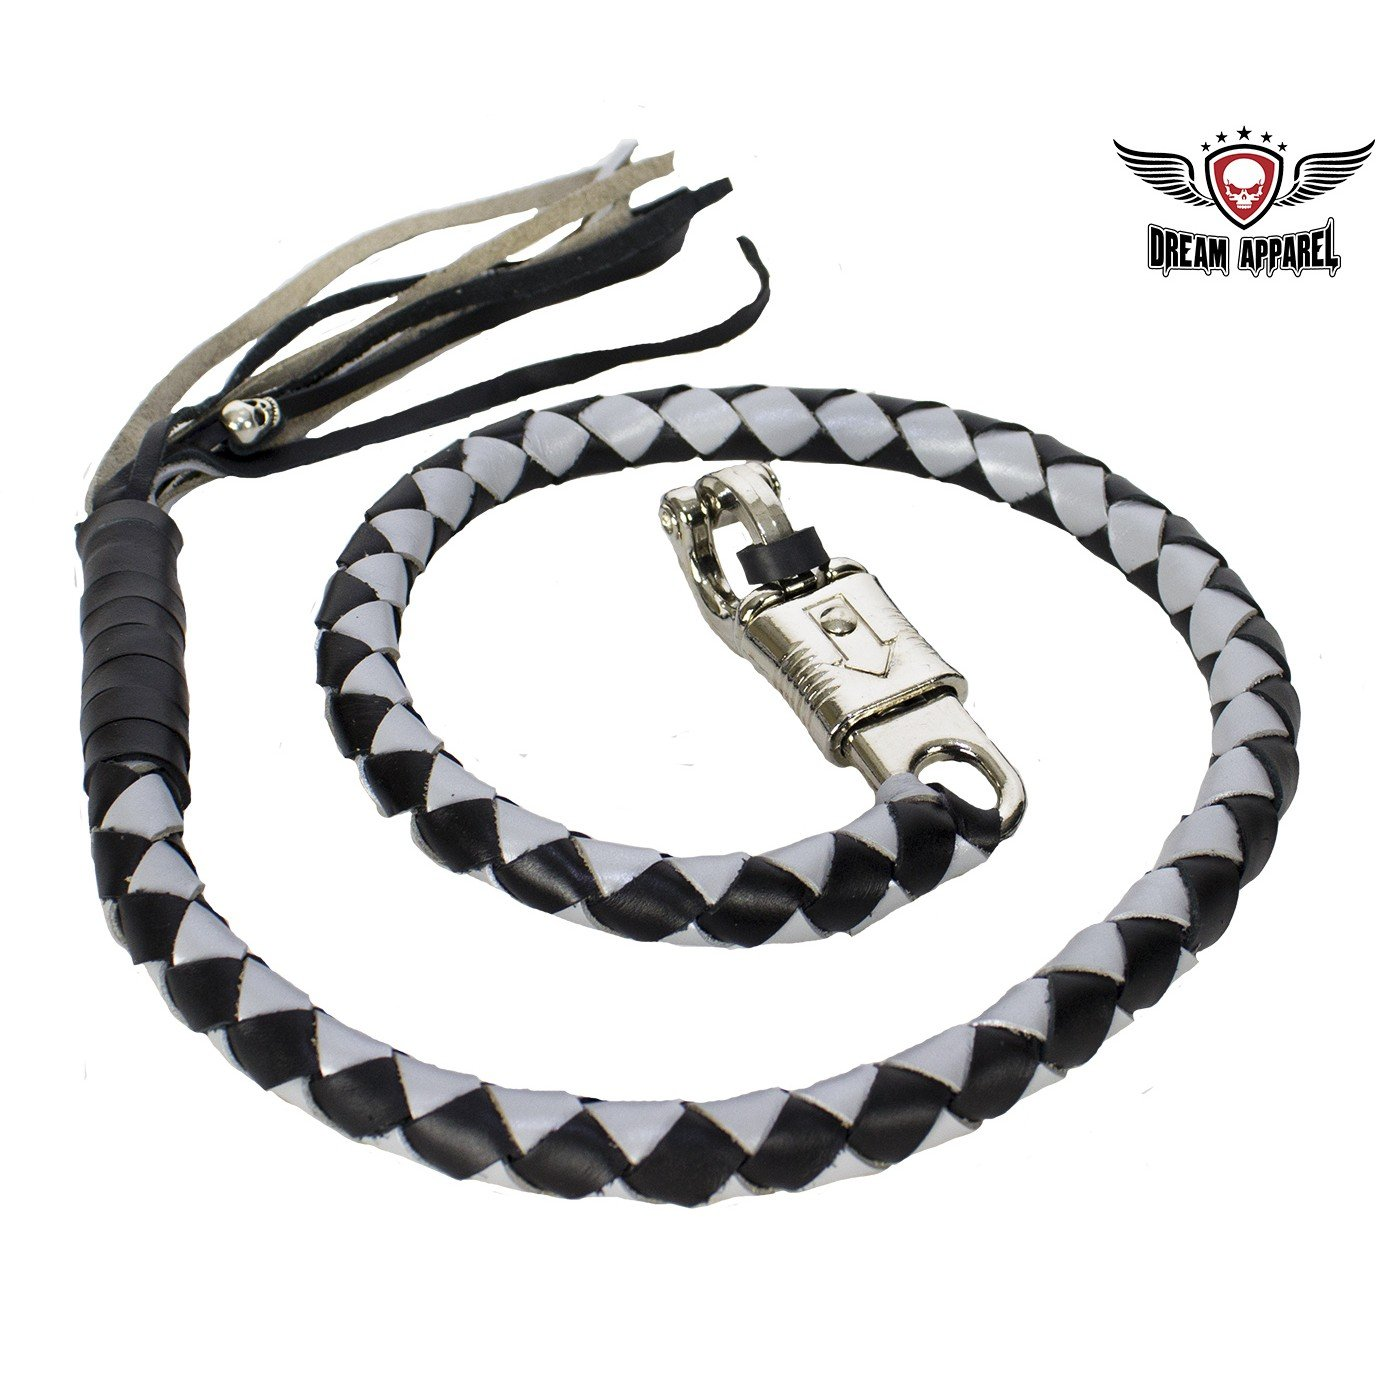 Pure Leather Biker Whip Get Back 36 Motorcycle Whip Get Back Whip Rope Gift Old School GBW6-11S